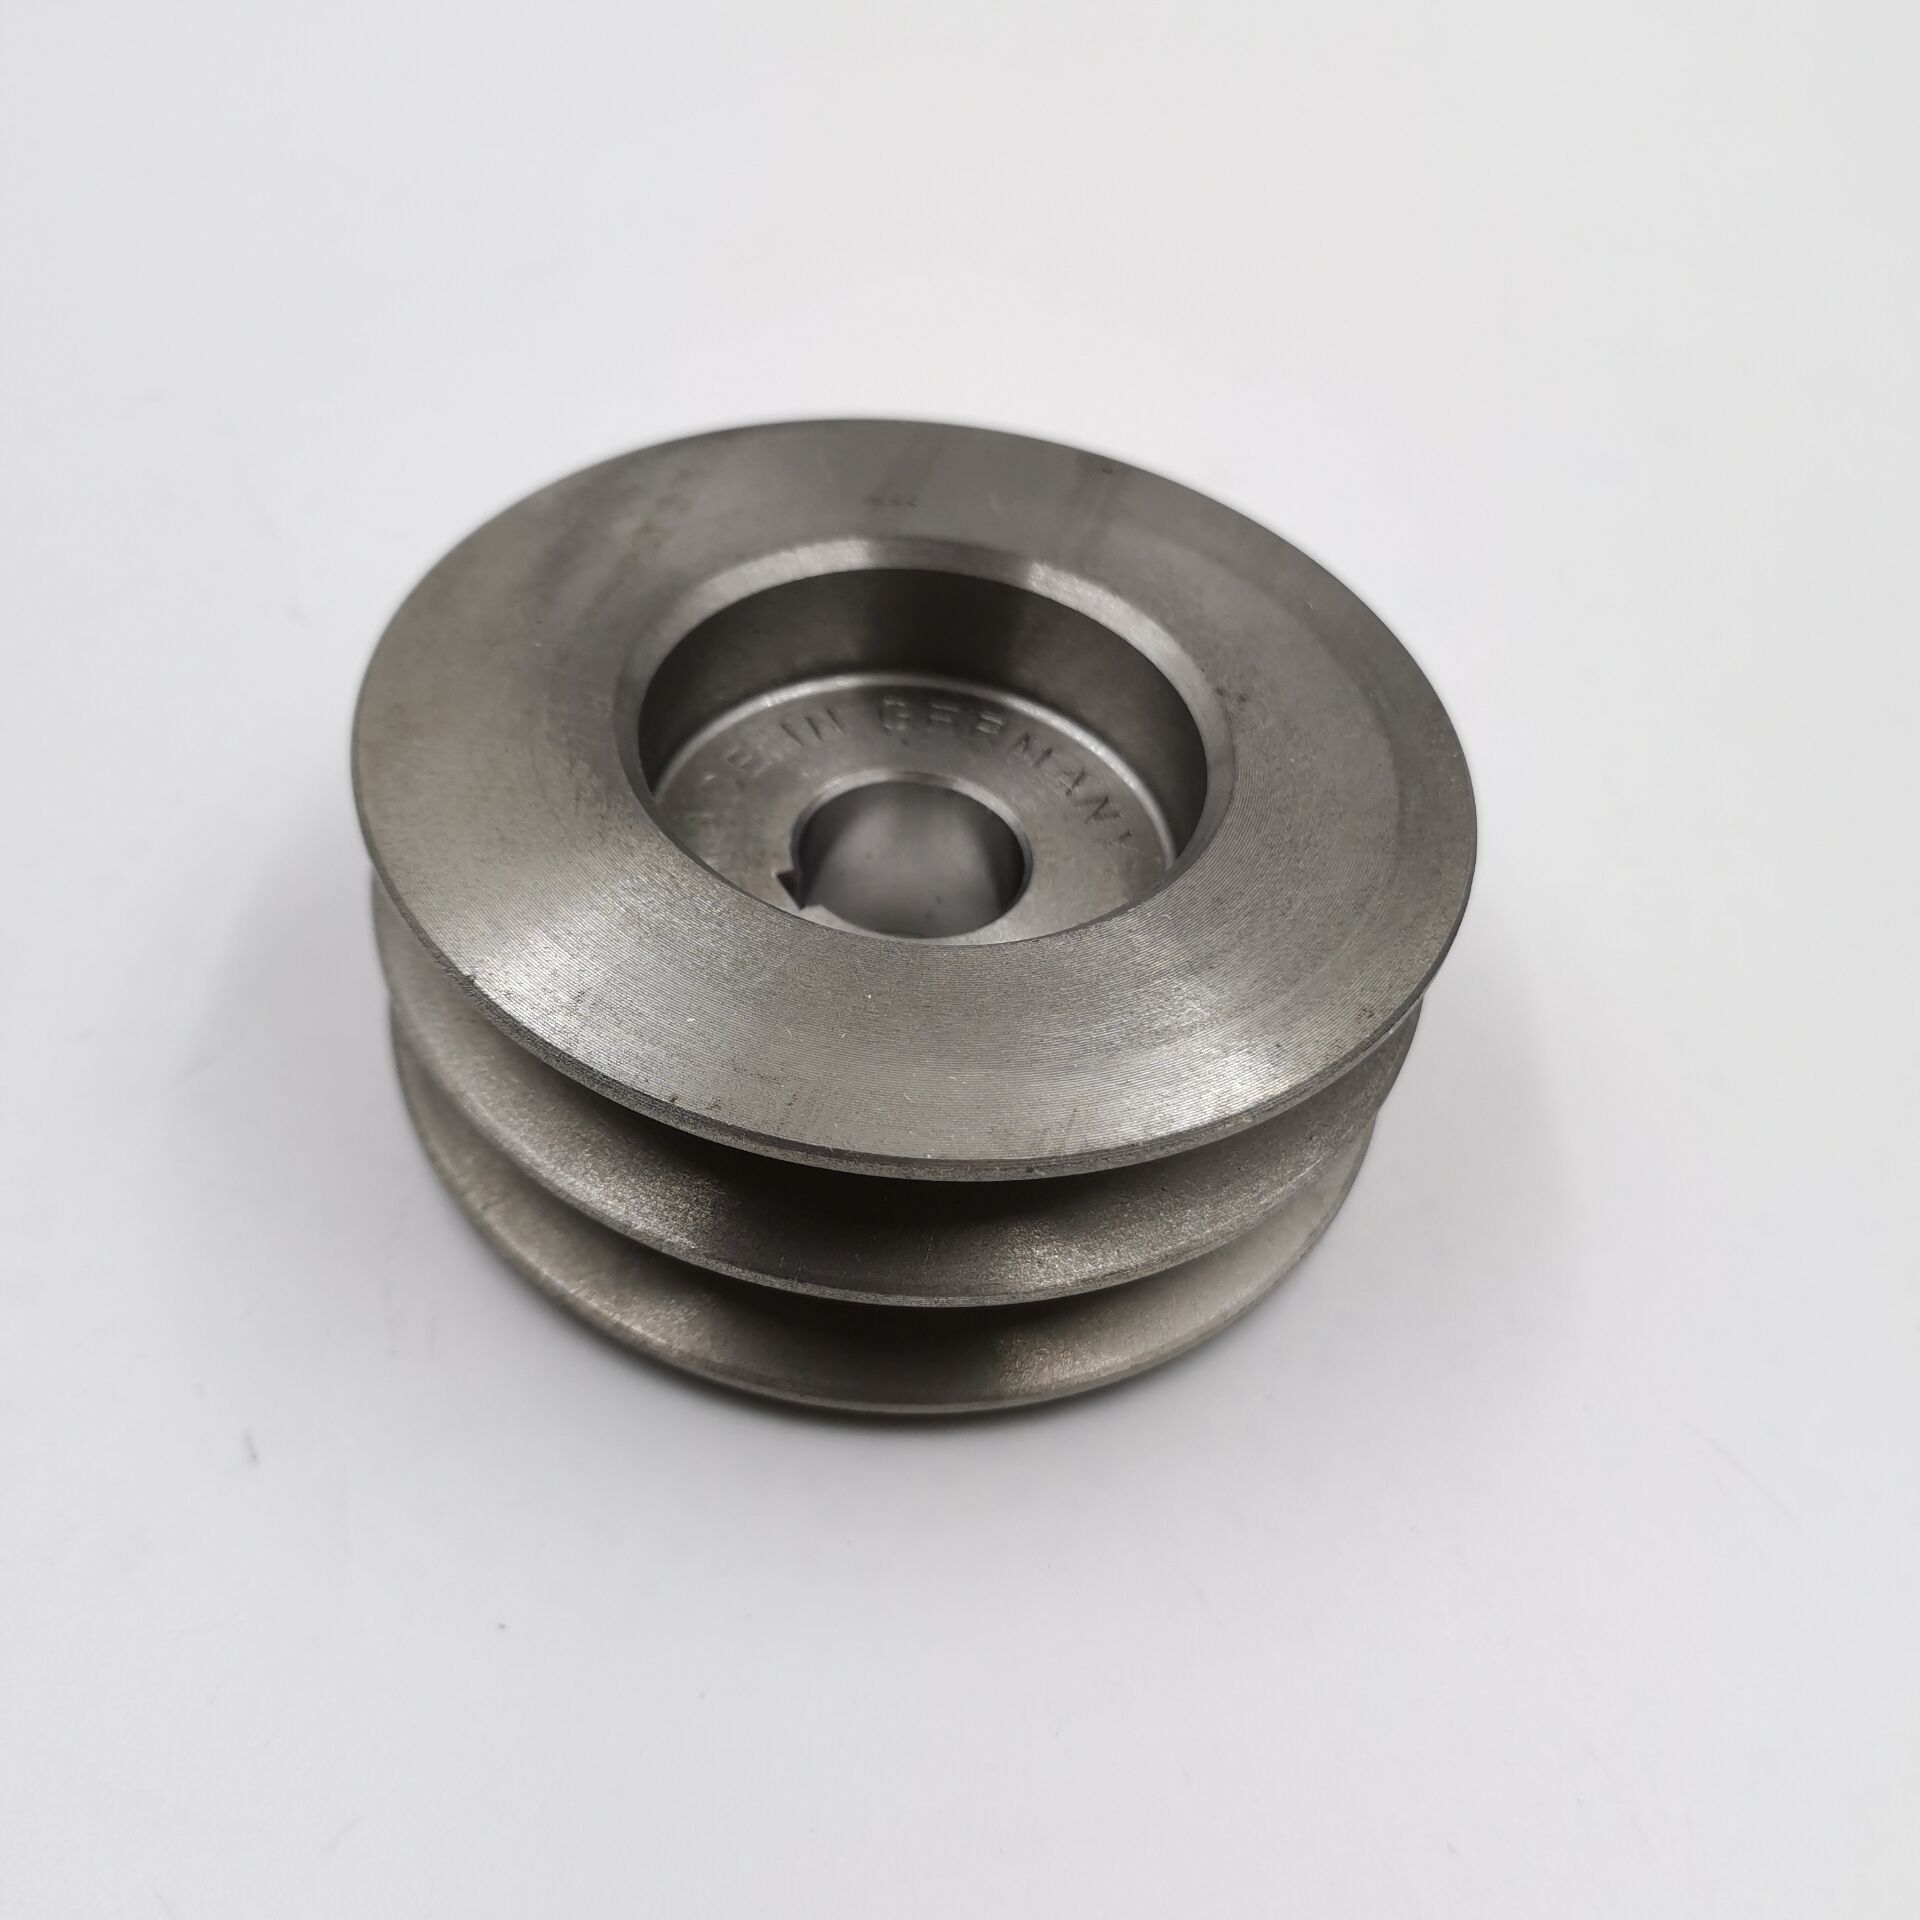 IDLE PULLEY 51261050015 FIT FOR MAN